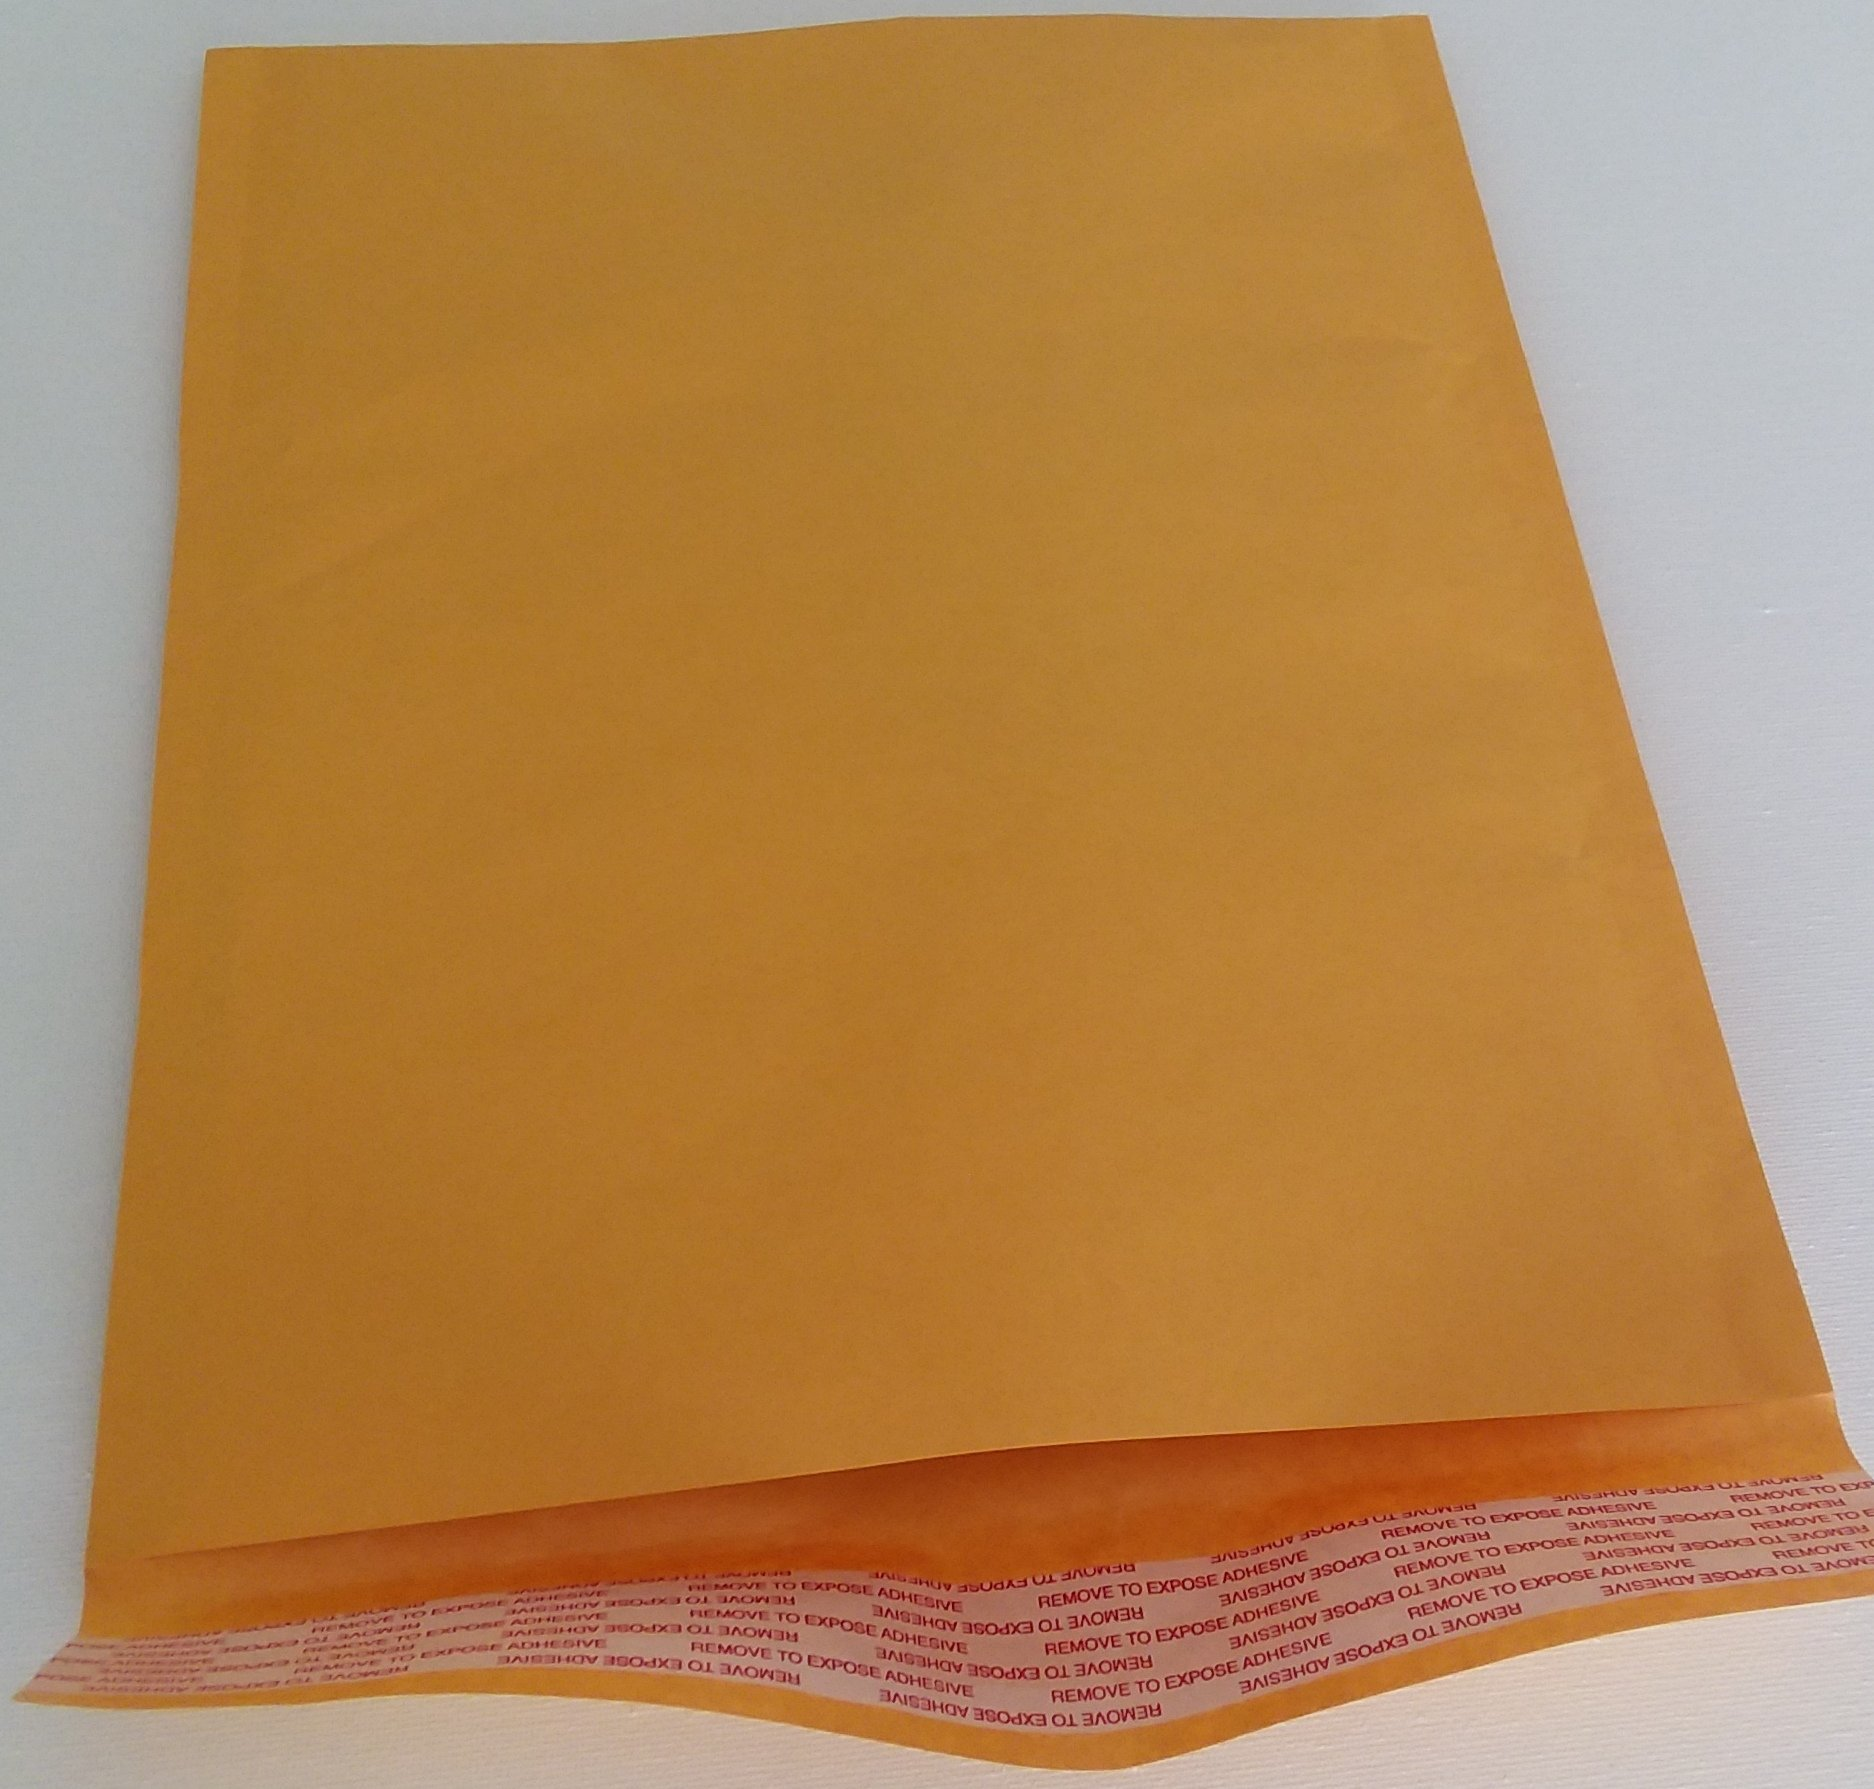 Kraft Bubble Mailers, No. 0 - Padded Shipping Envelopes by Sidemuse - 6x10 inches - Pack of 100 Pcs